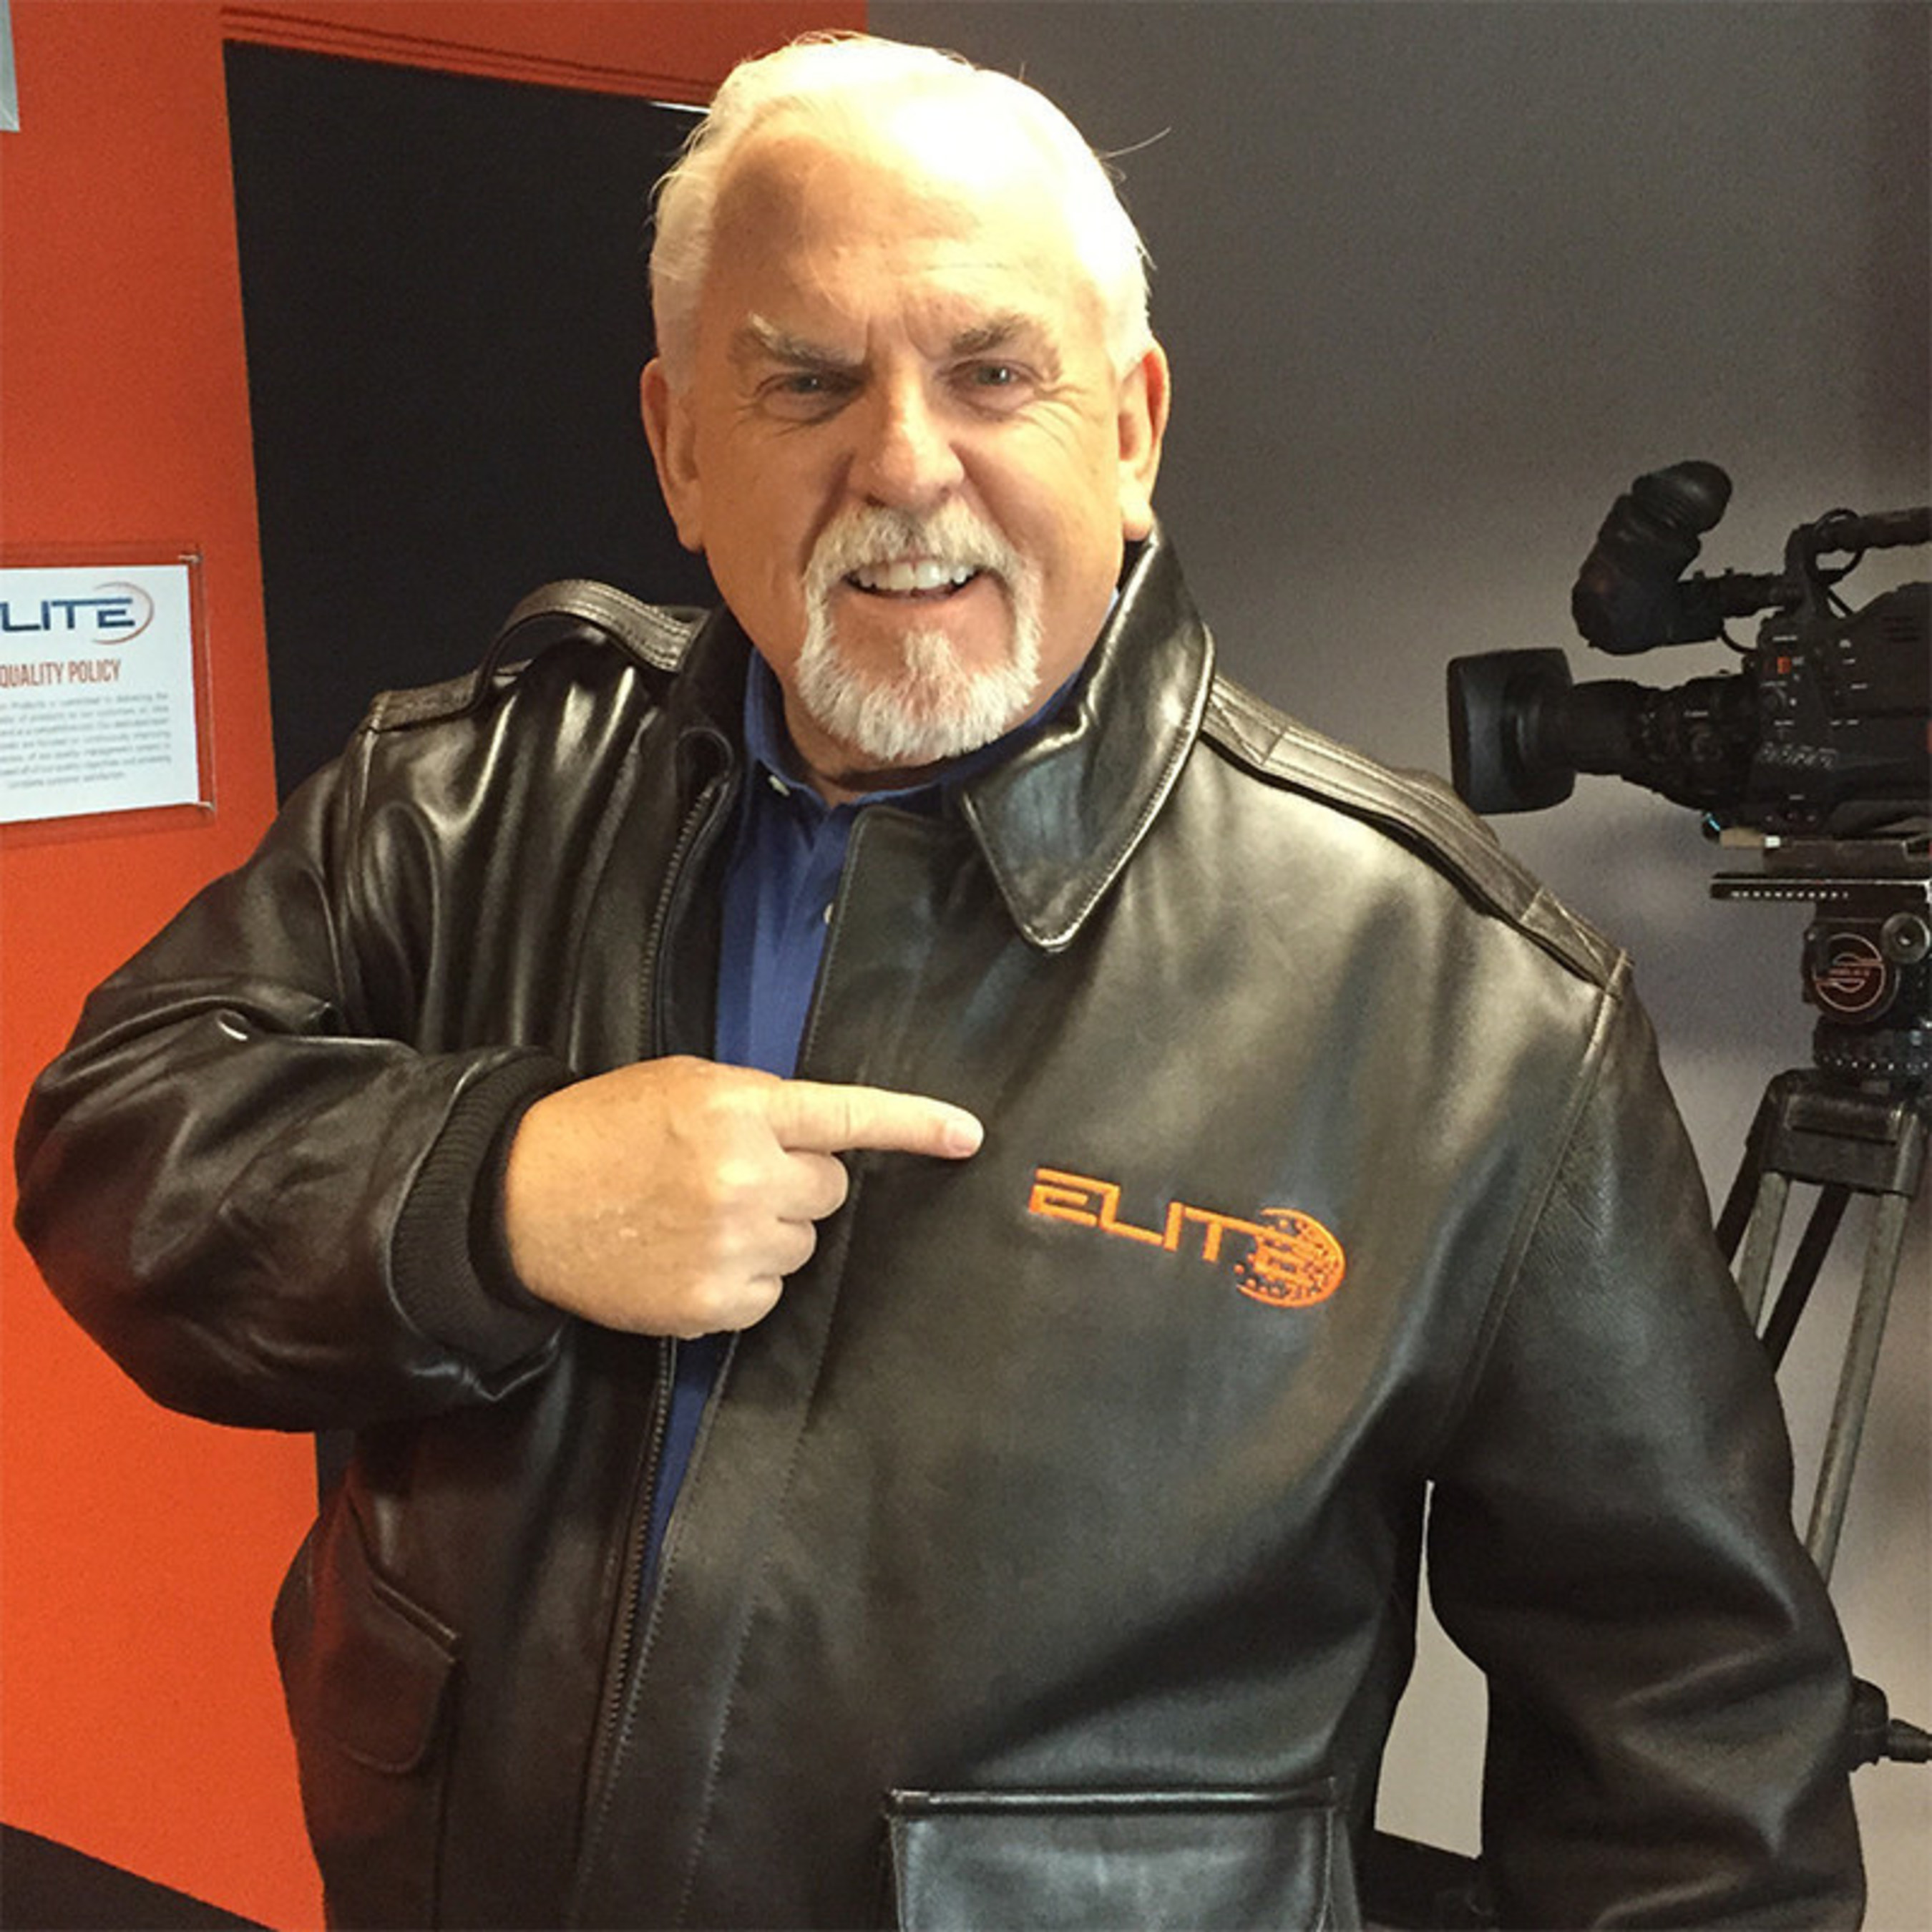 John Ratzenberger to Host Elite Aviation Products' Second Annual Aerospace & Defense Symposium